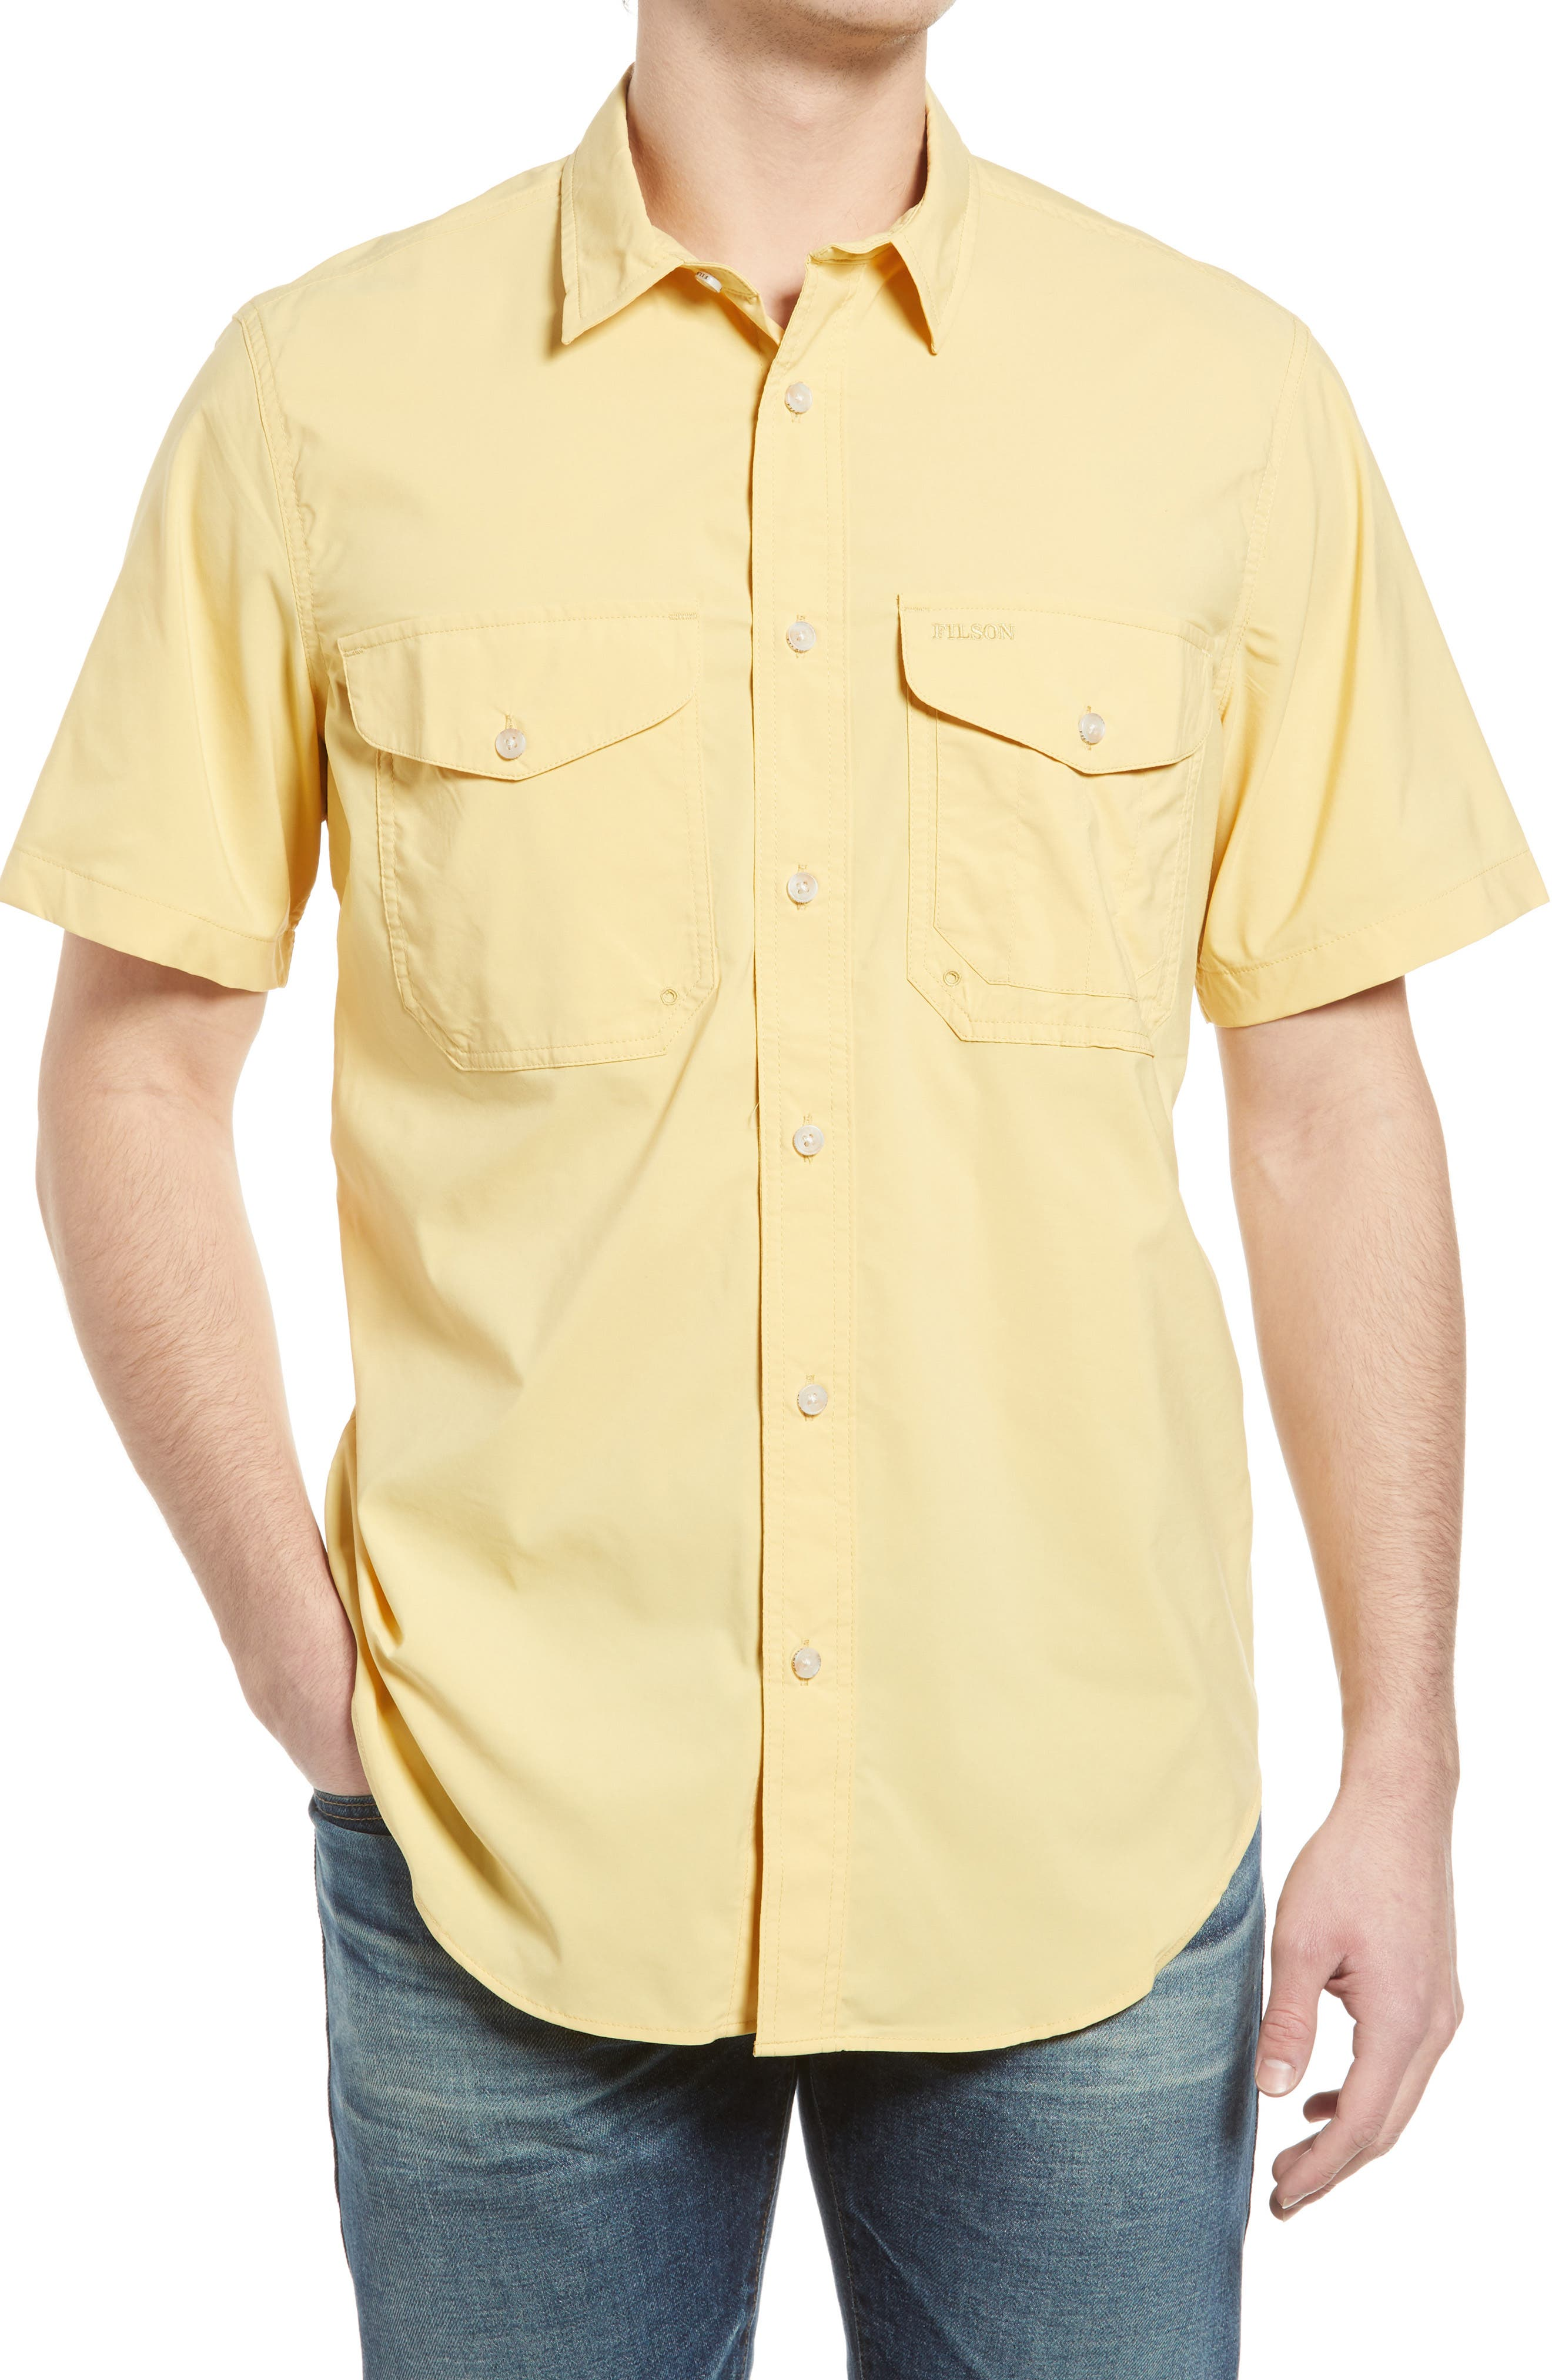 Twin Lakes Regular Fit Plaid Button-Up Shirt